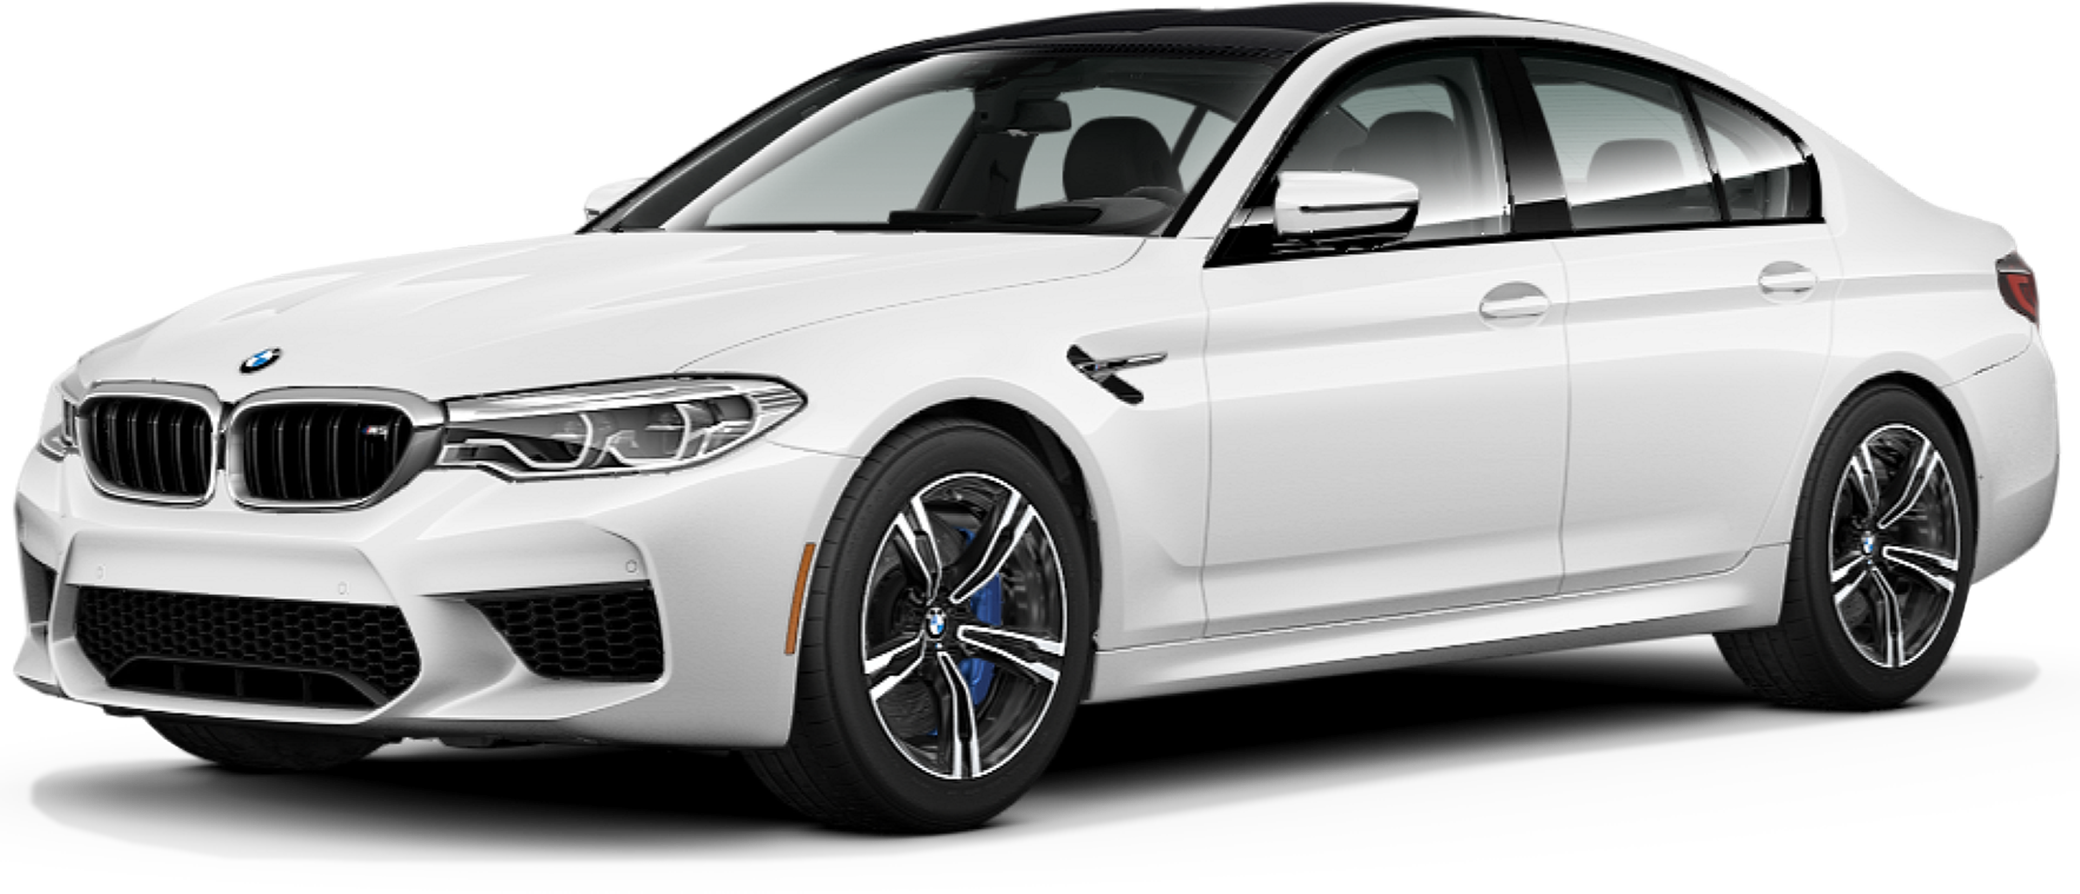 2020 Bmw M5 Incentives Specials Amp Offers In Towson Md